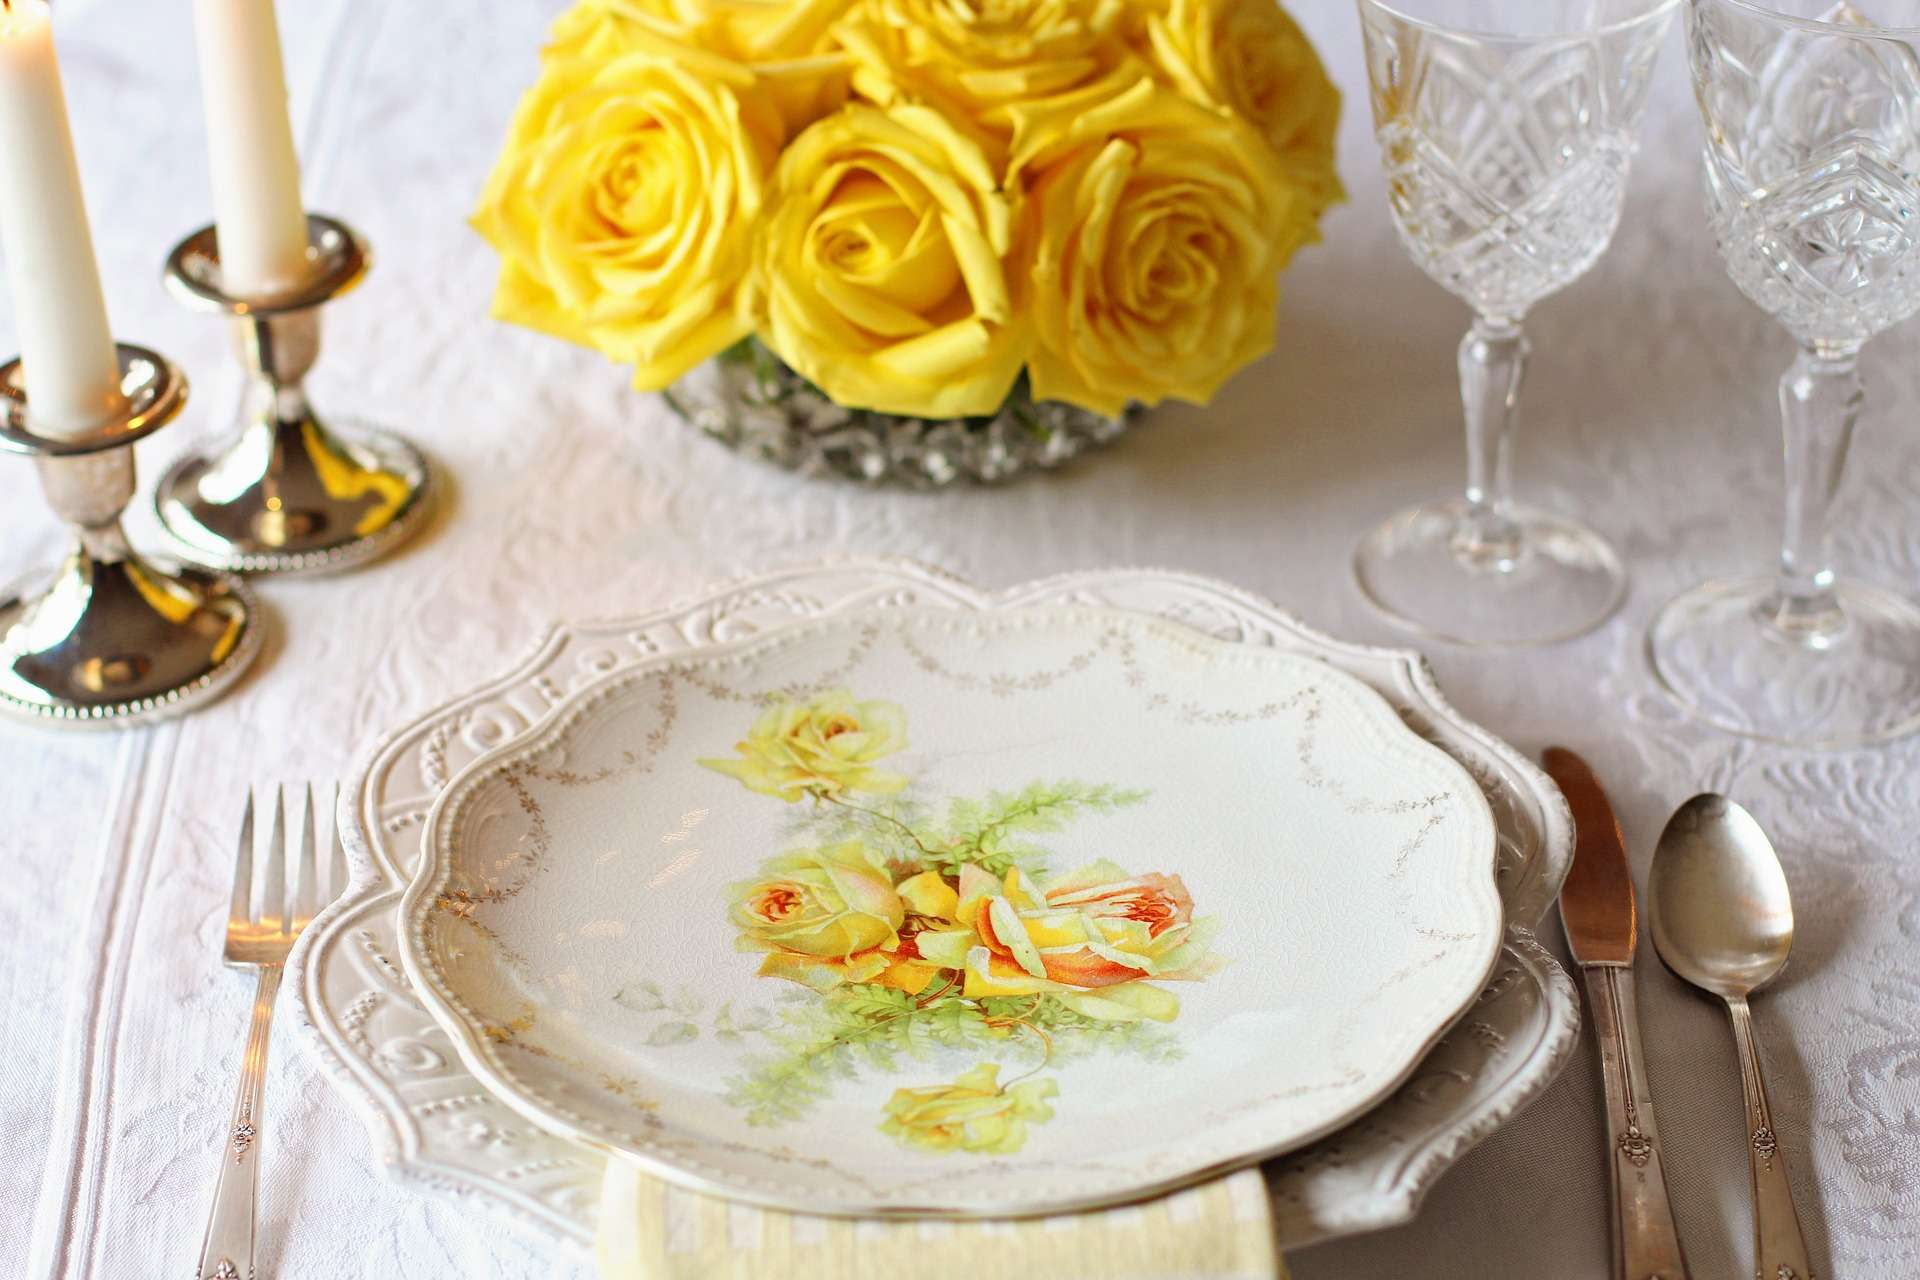 Table Setting Candlesticks Wine glasses, yellow roses to match the yellow rose pattern on the plate.